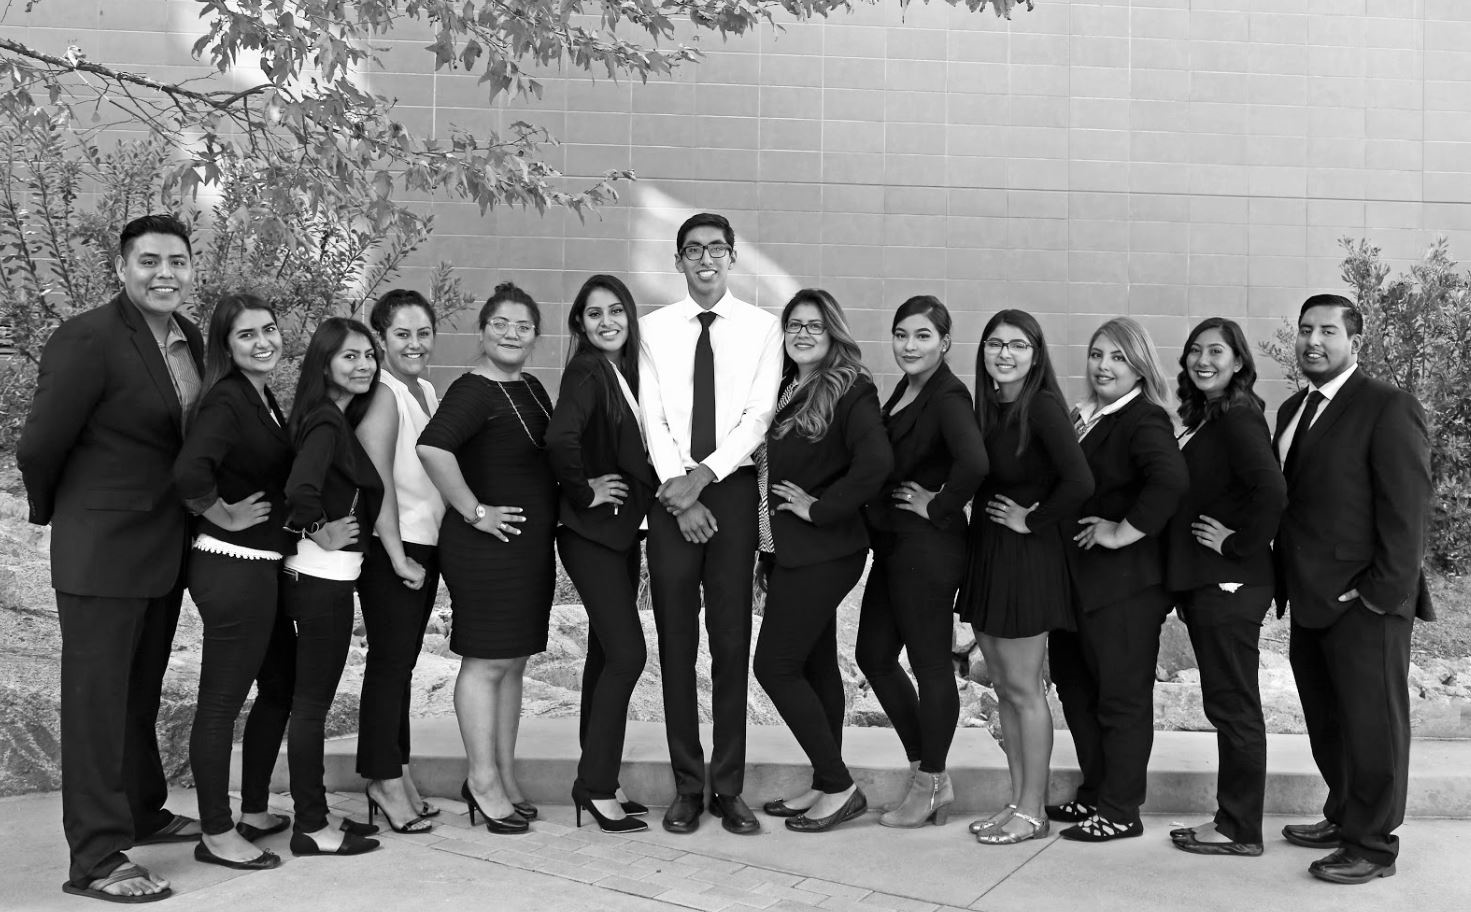 Latino business students